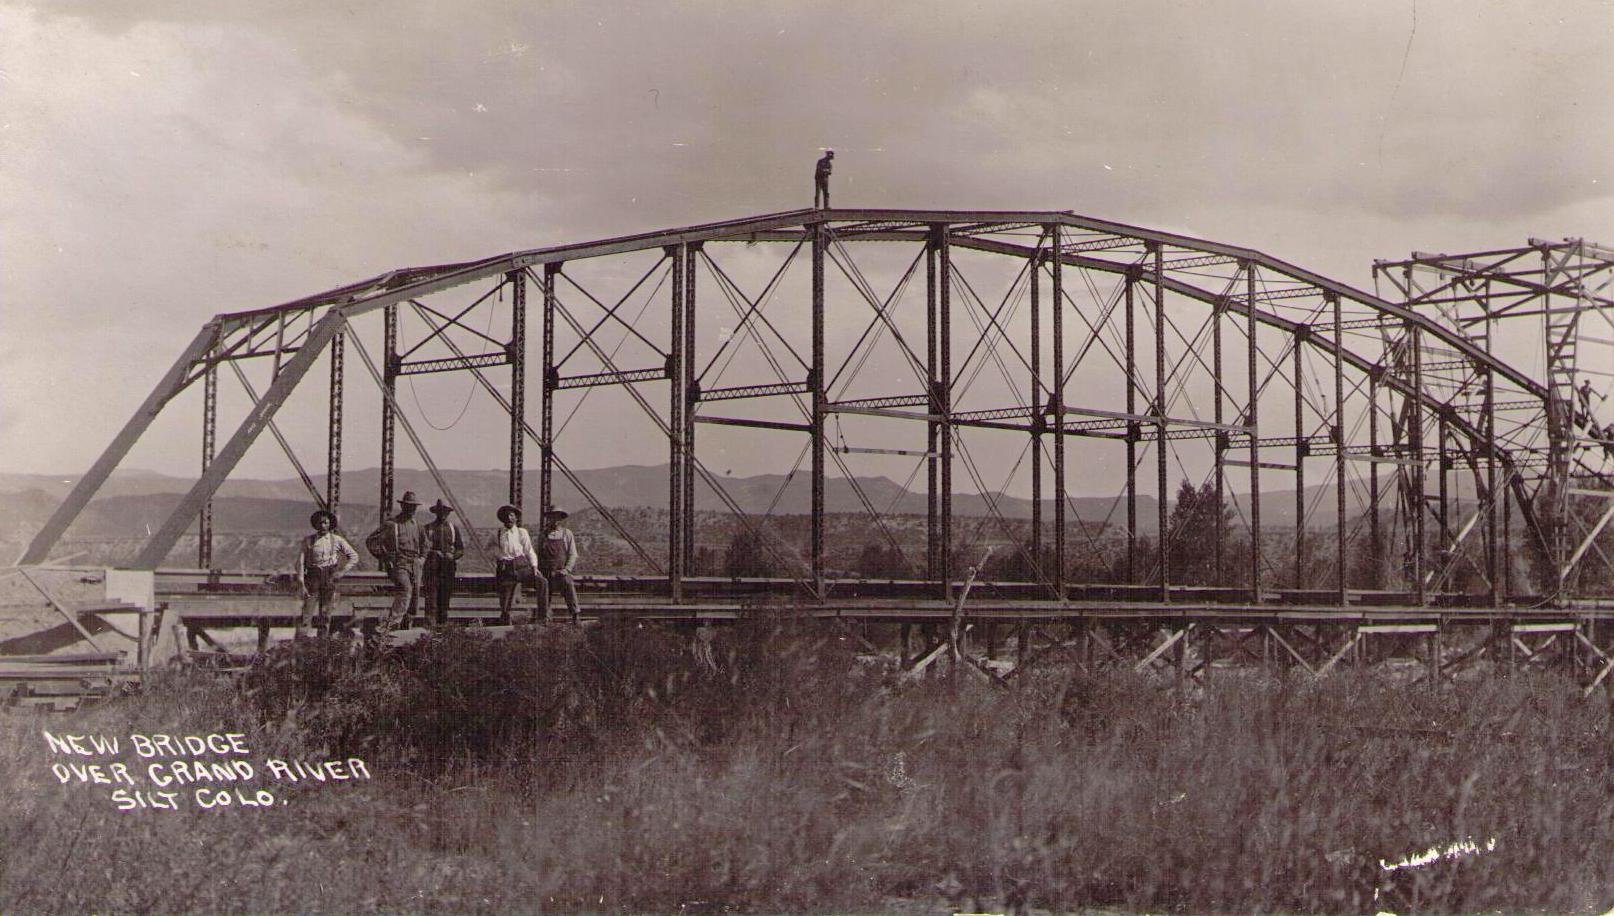 Building the Silt Bridge